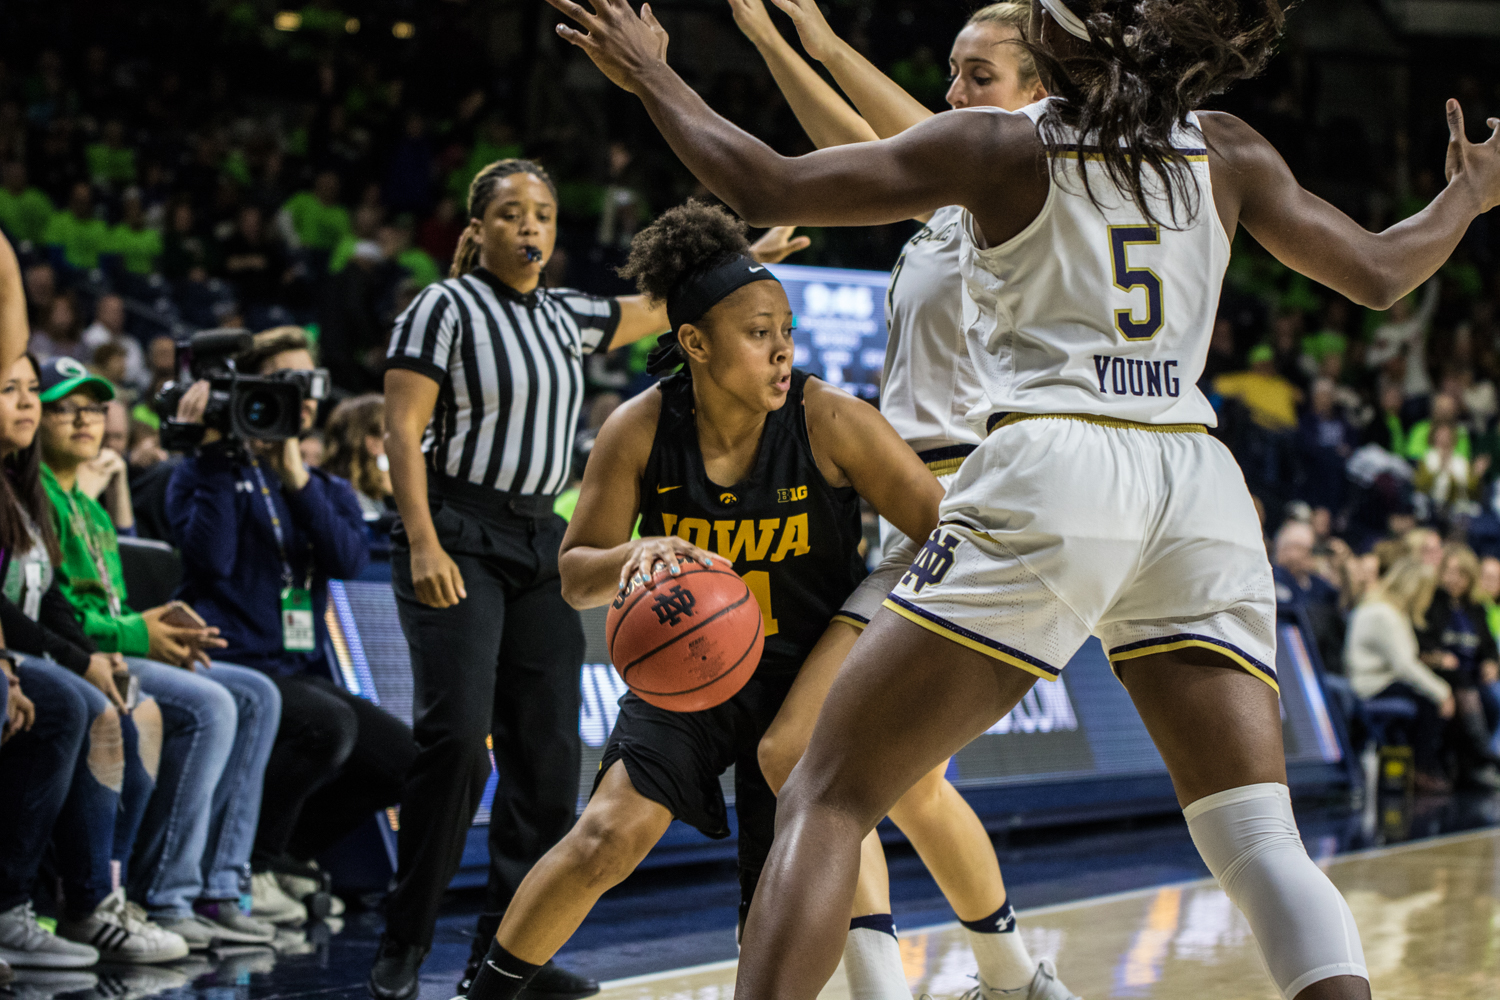 Iowa senior Tania Davis dribbles the ball during a basketball match between Iowa and Notre Dame in South Bend, IN on Thursday, November 29, 2018. The Hawkeyes were defeated by the Fighting Irish, 105-71.